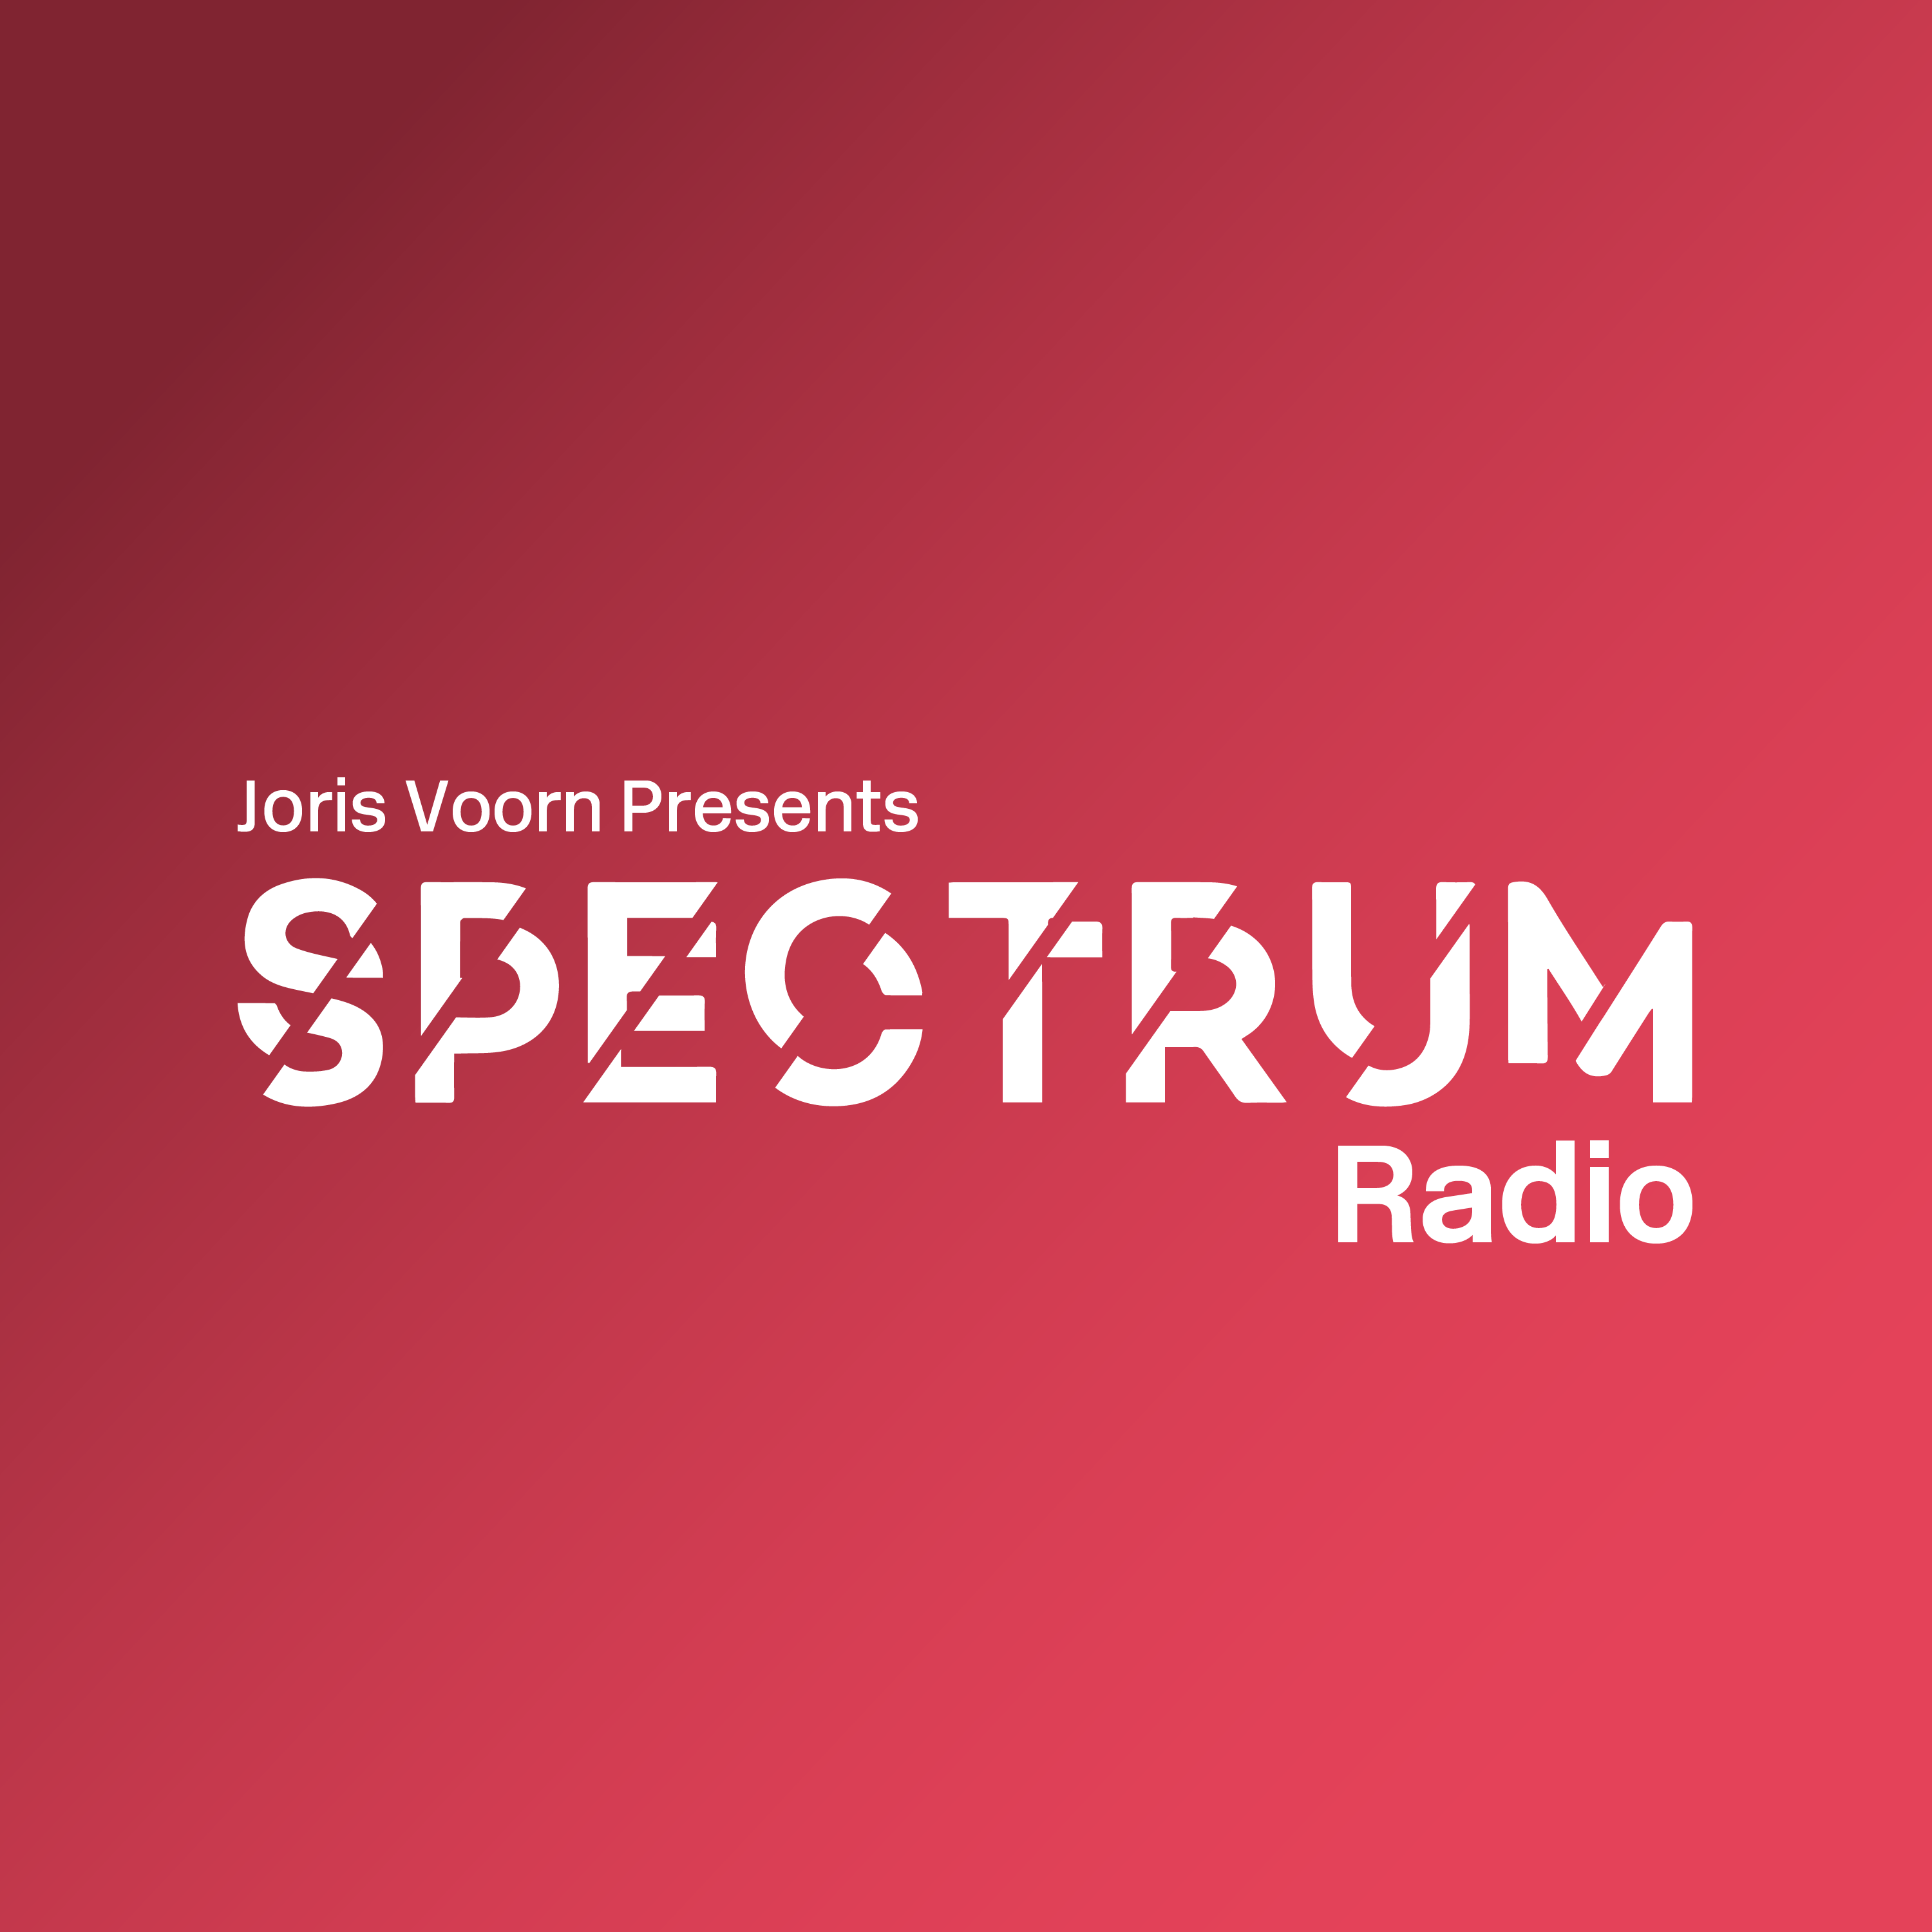 Delta Podcasts - Spectrum Radio By Joris Voorn (24.09.2017)